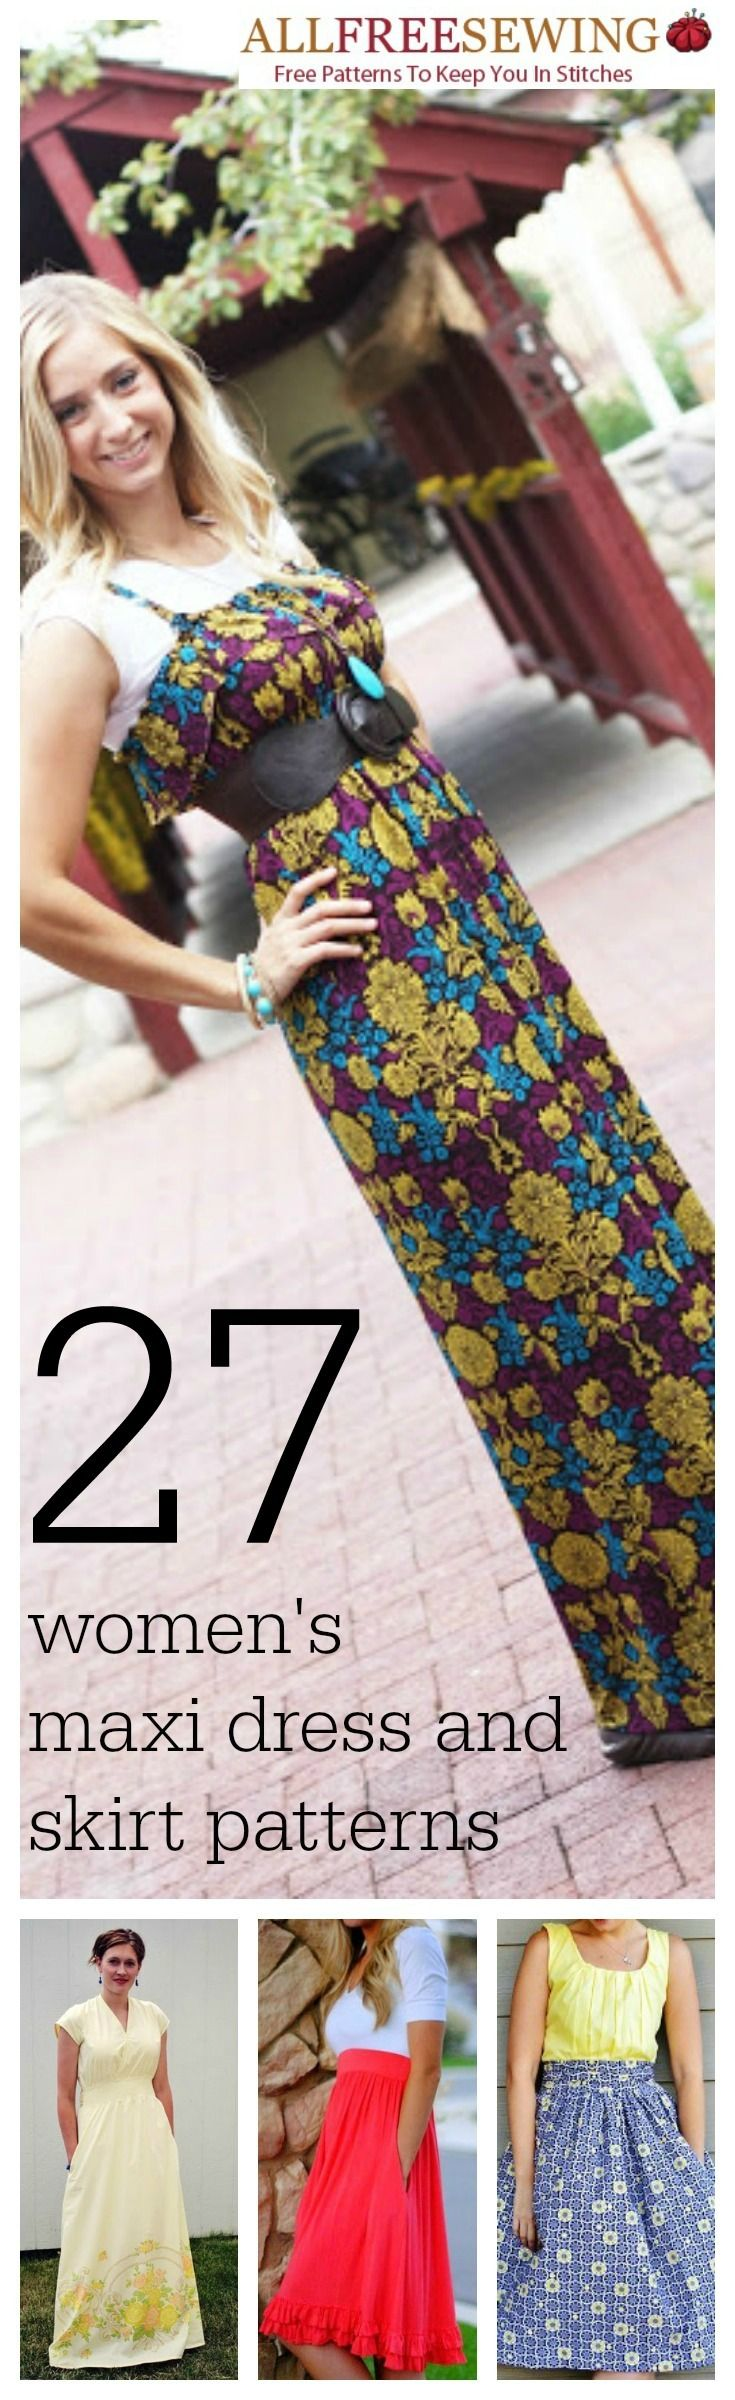 29 Long Dresses for Summer, Women's Maxi Dresses, and Long ...